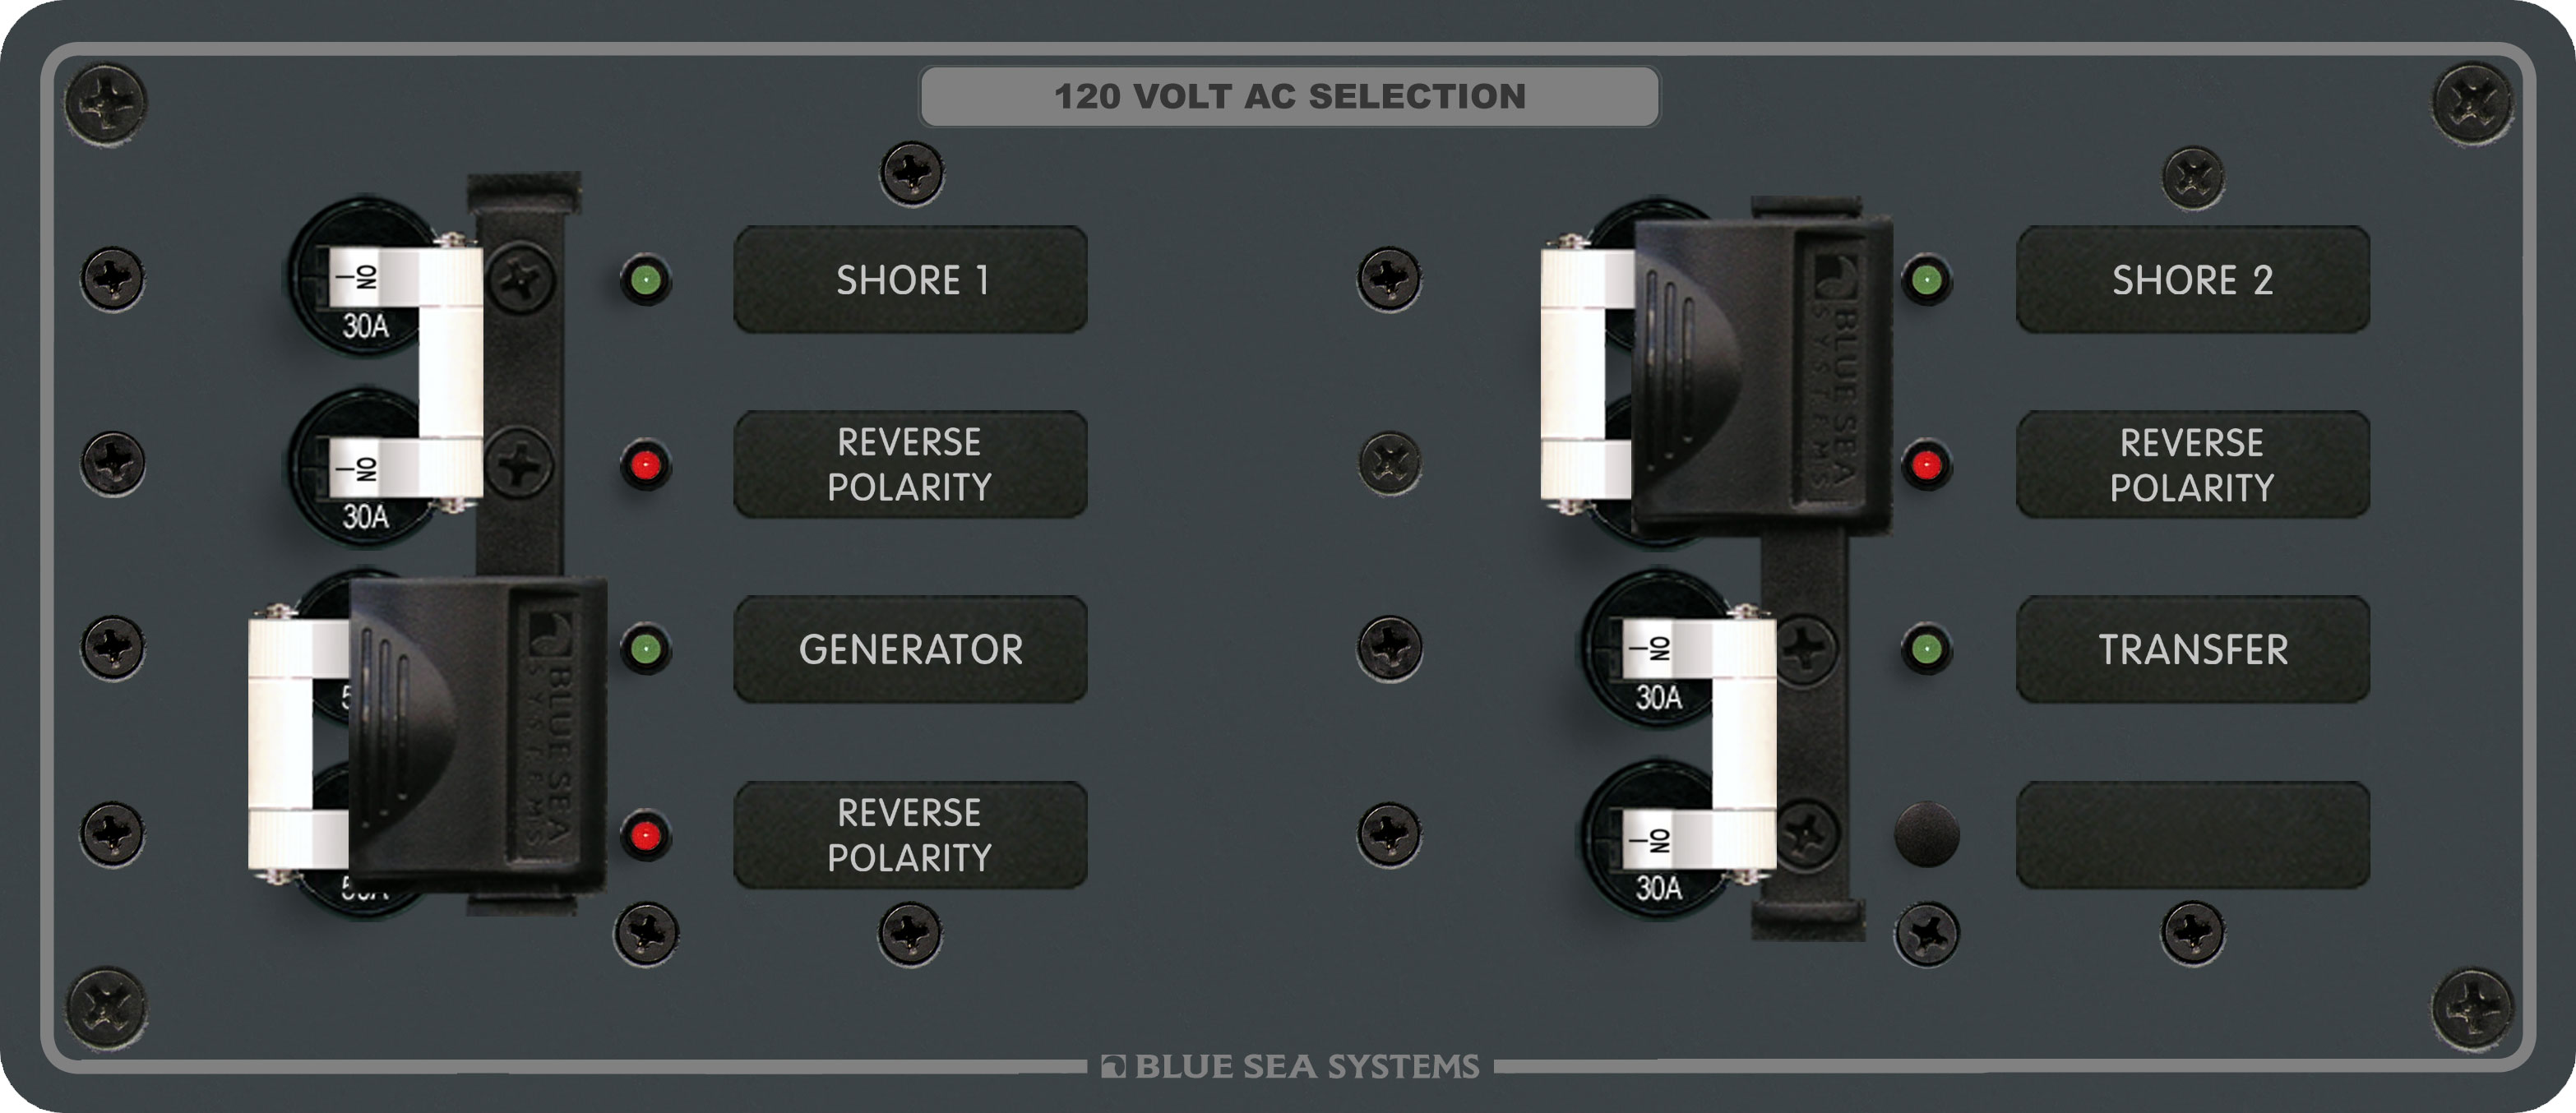 AC 3 Sources - Horizontal - Blue Sea Systems